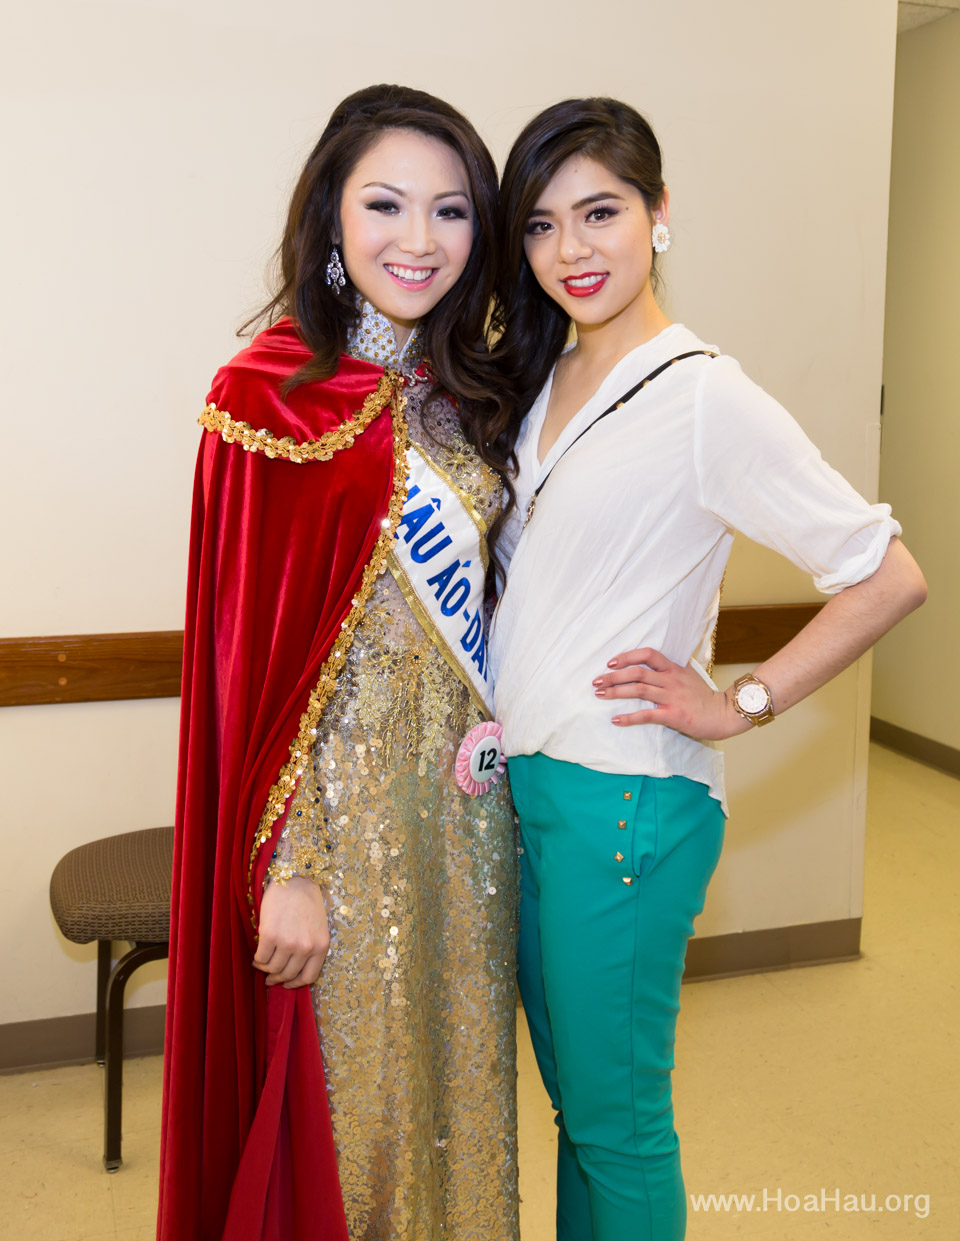 Miss Vietnam of Northern California 2014 - Hoa Hau Ao Dai Bac Cali 2014 - Behind the Scenes - Image 332